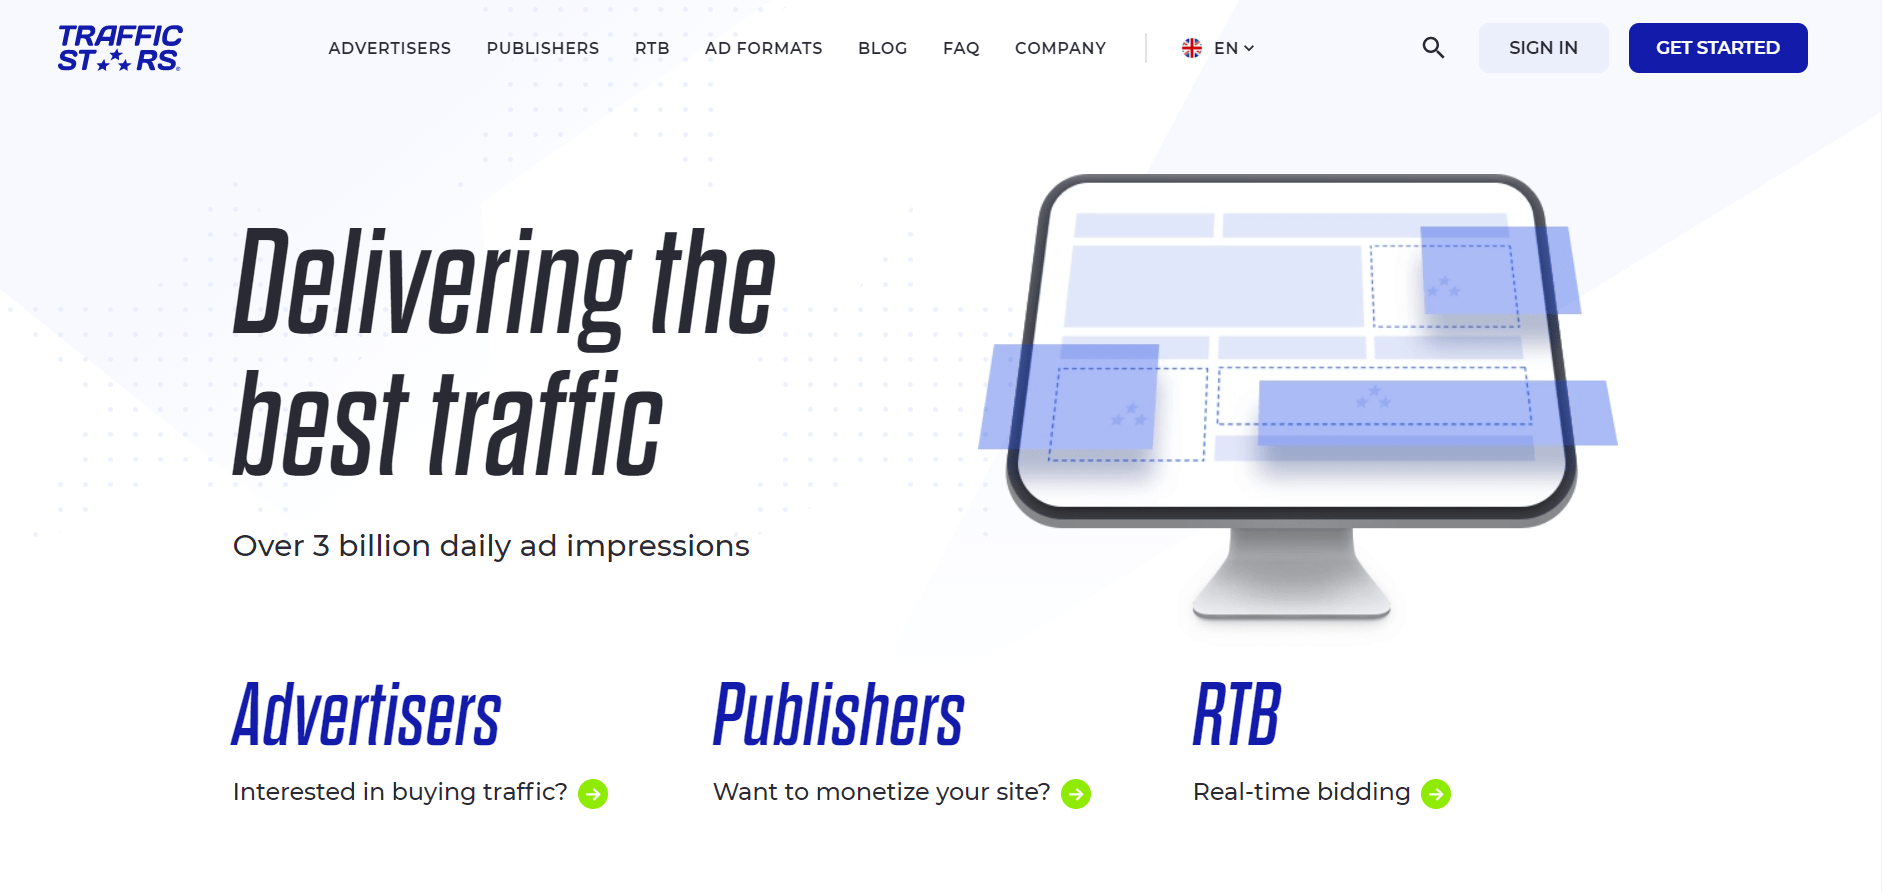 TrafficStars Review - Overview